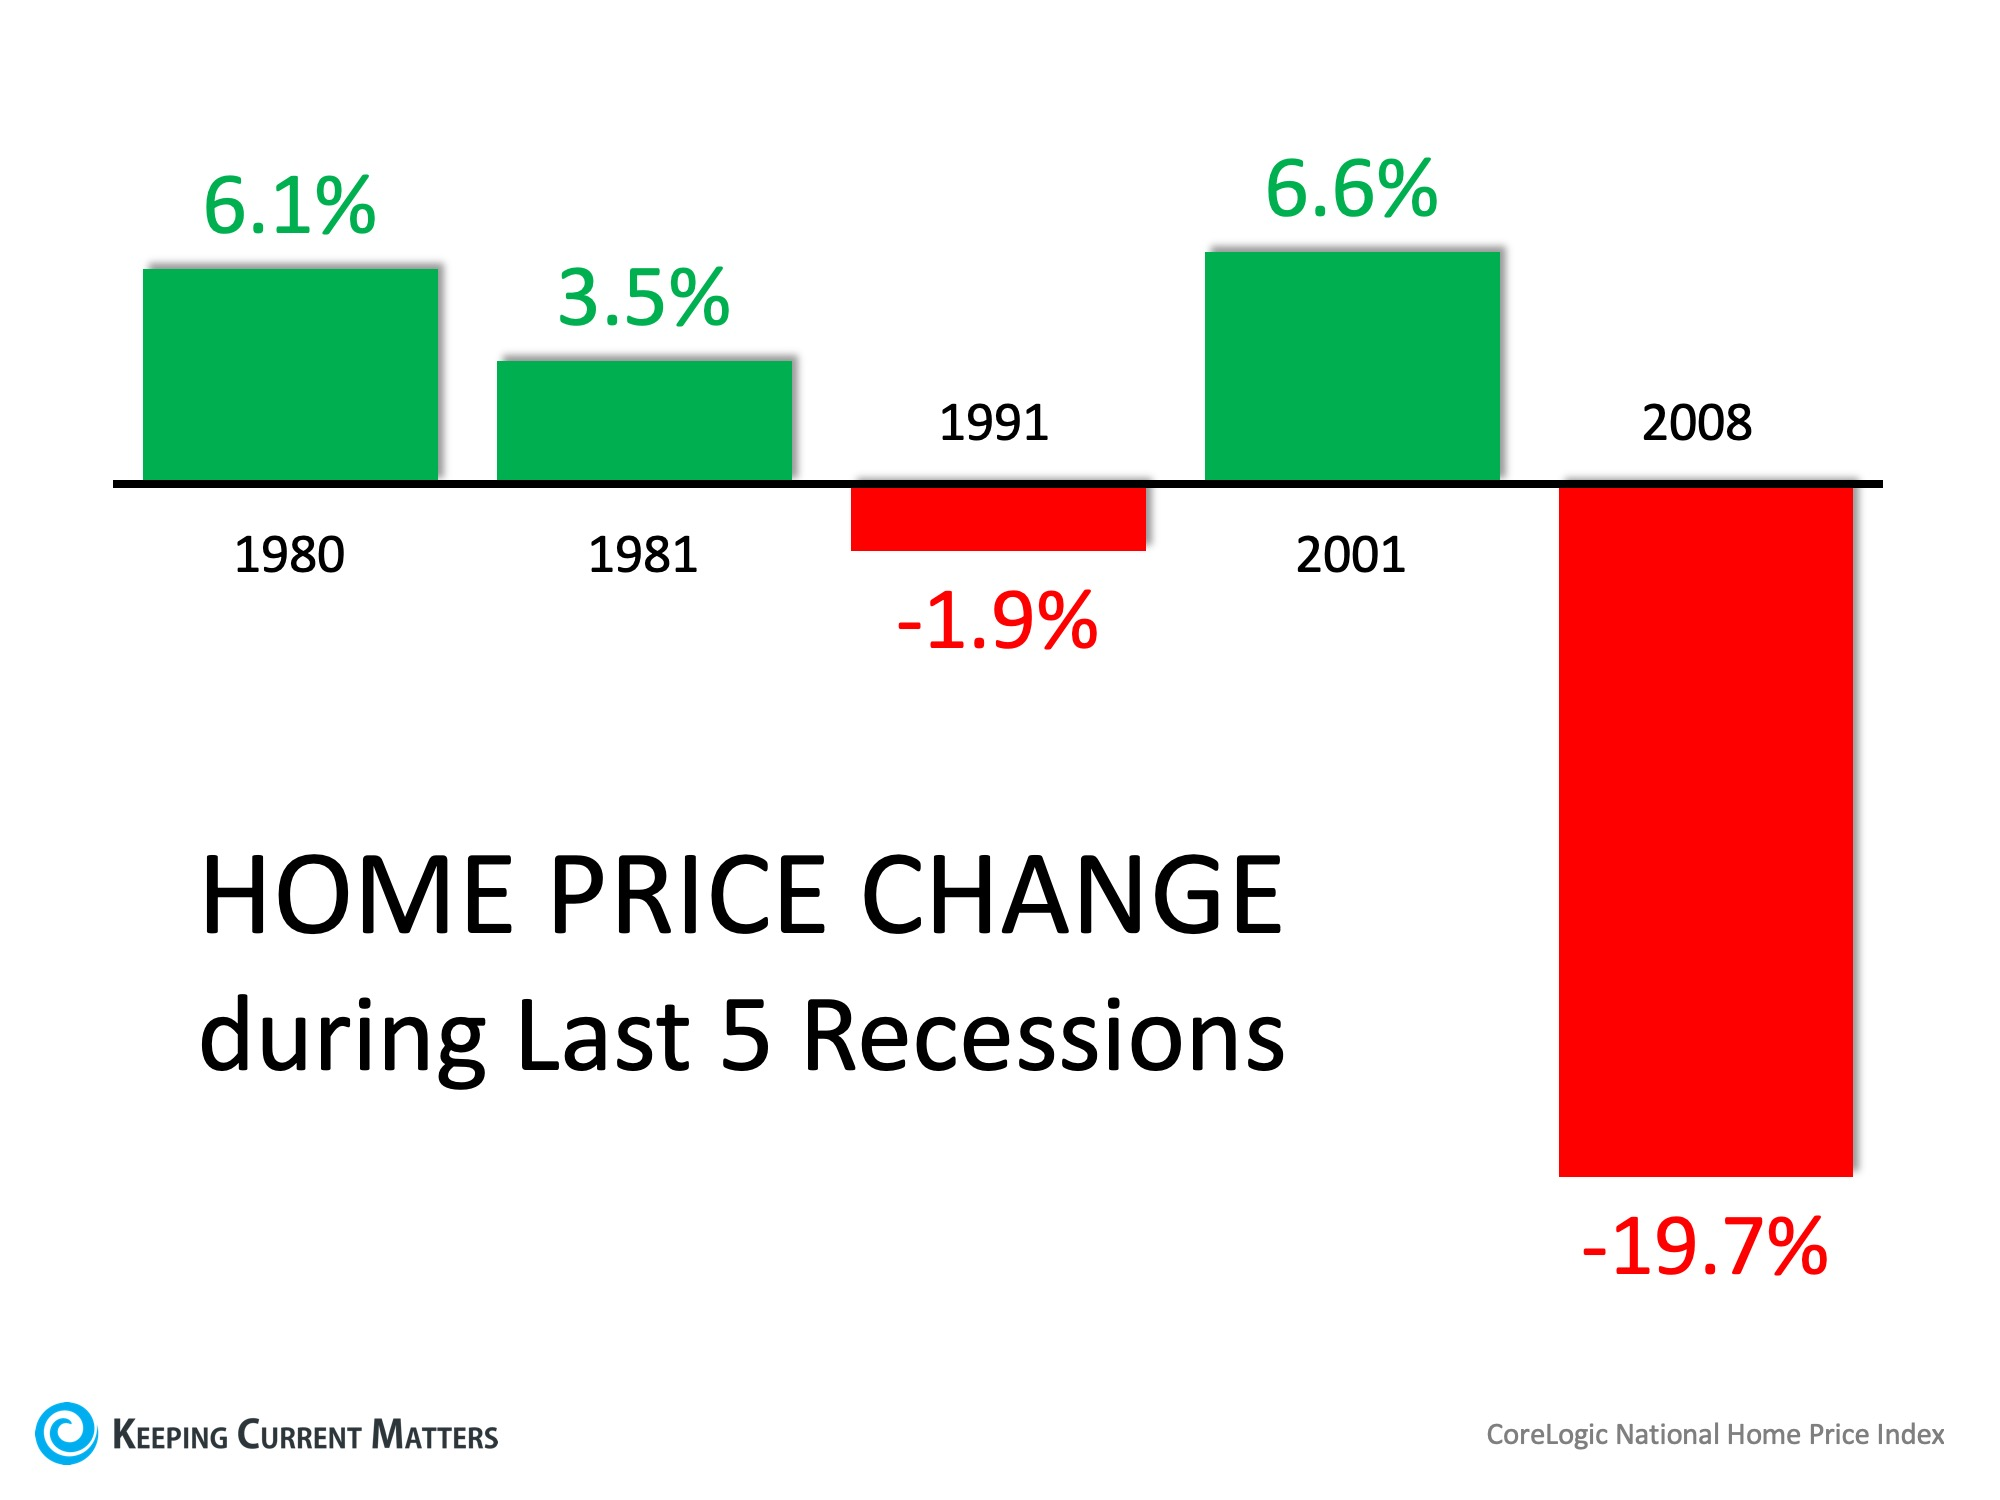 Home prices during the last 5 recessions